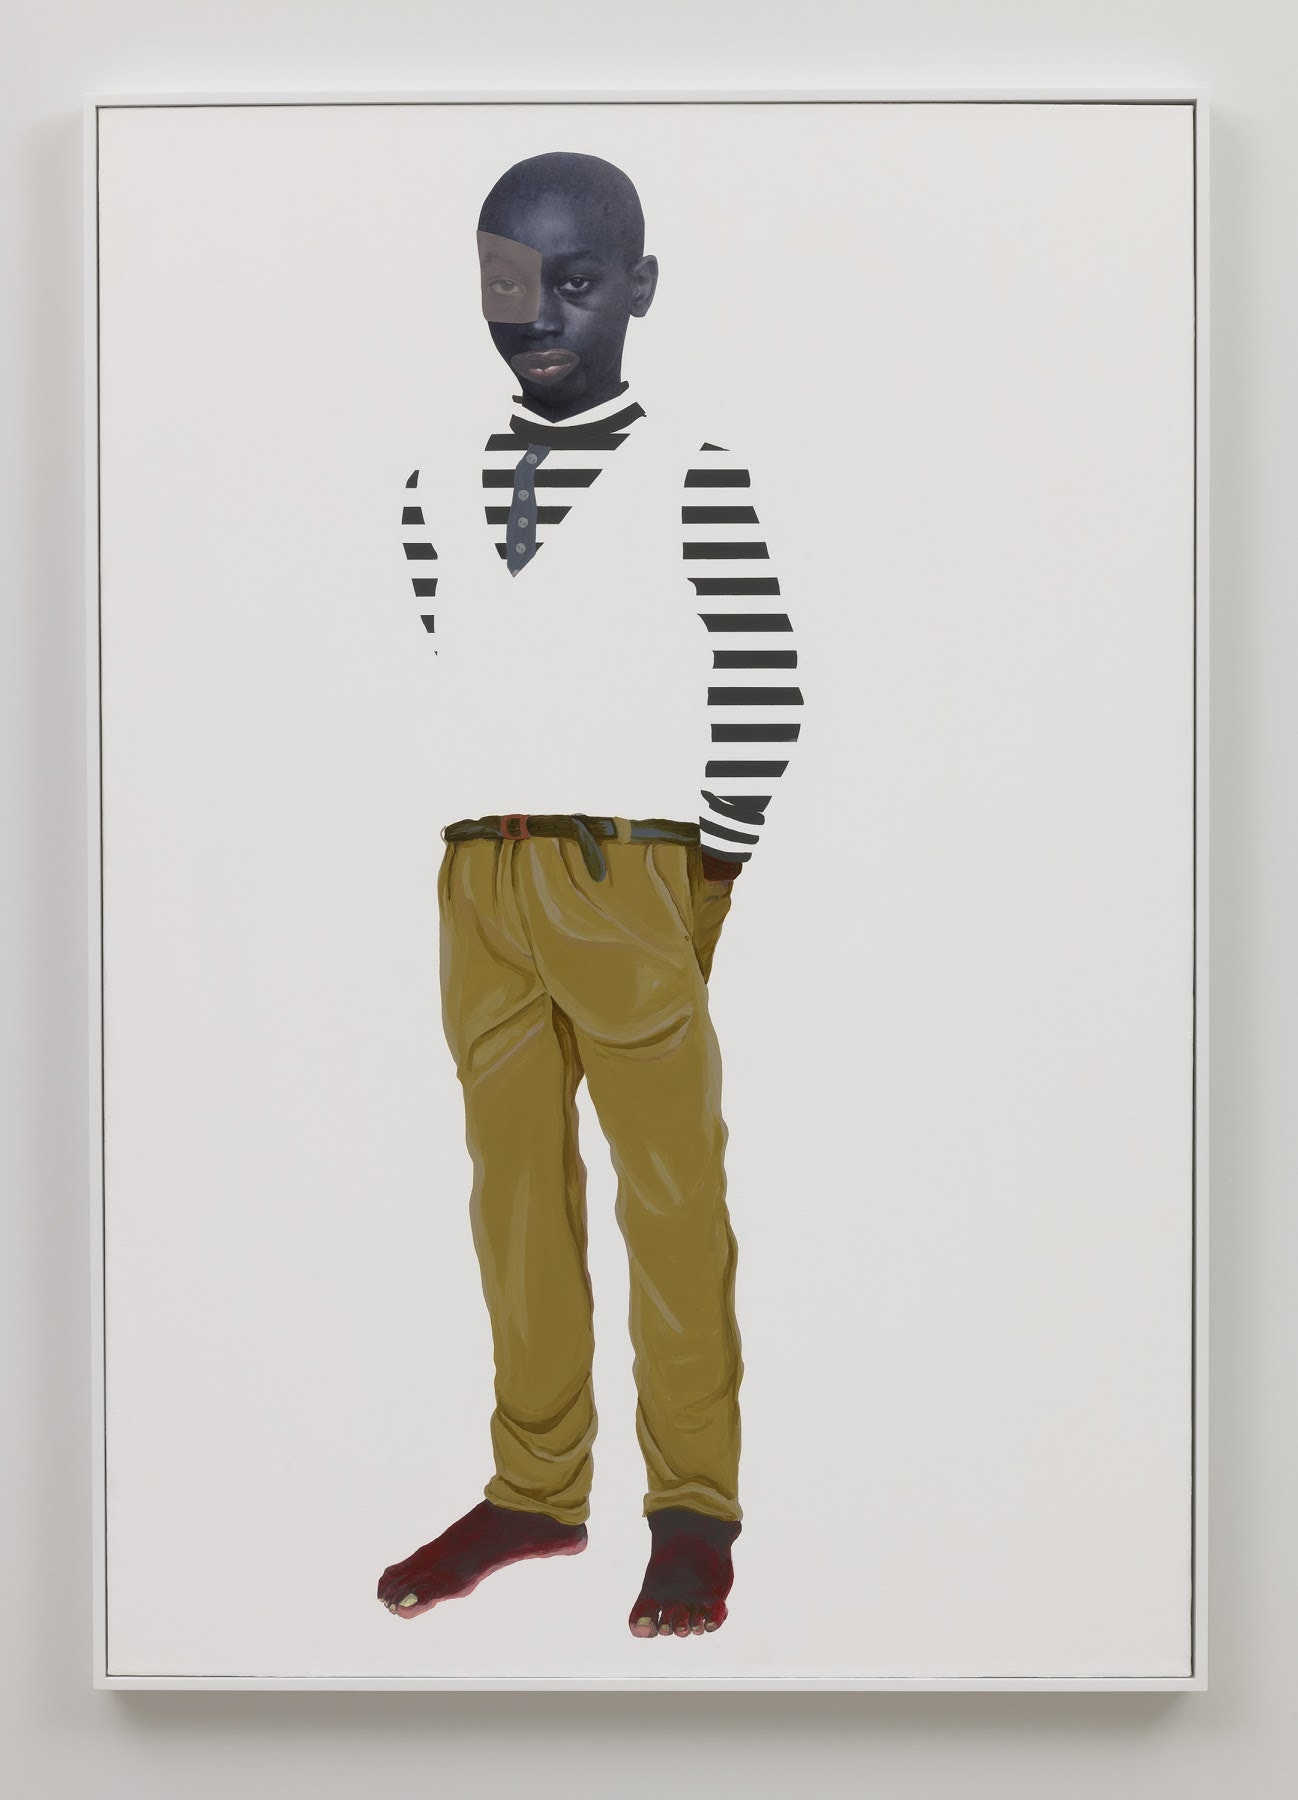 """Native Sons: Many thousands gone"" at Vielmetter Los Angeles - BY Victoria L. Valentine CULTURE TYPE April 23 2019VIELMETTER LOS ANGELES announced its representation of Deborah Roberts in late February and her first exhibition with the gallery opened last week.[Image caption] ""From feet to wings (Nessun Dorma Series),"" 2018 (Mixed media collage on canvas, 65 x 45 inches)"